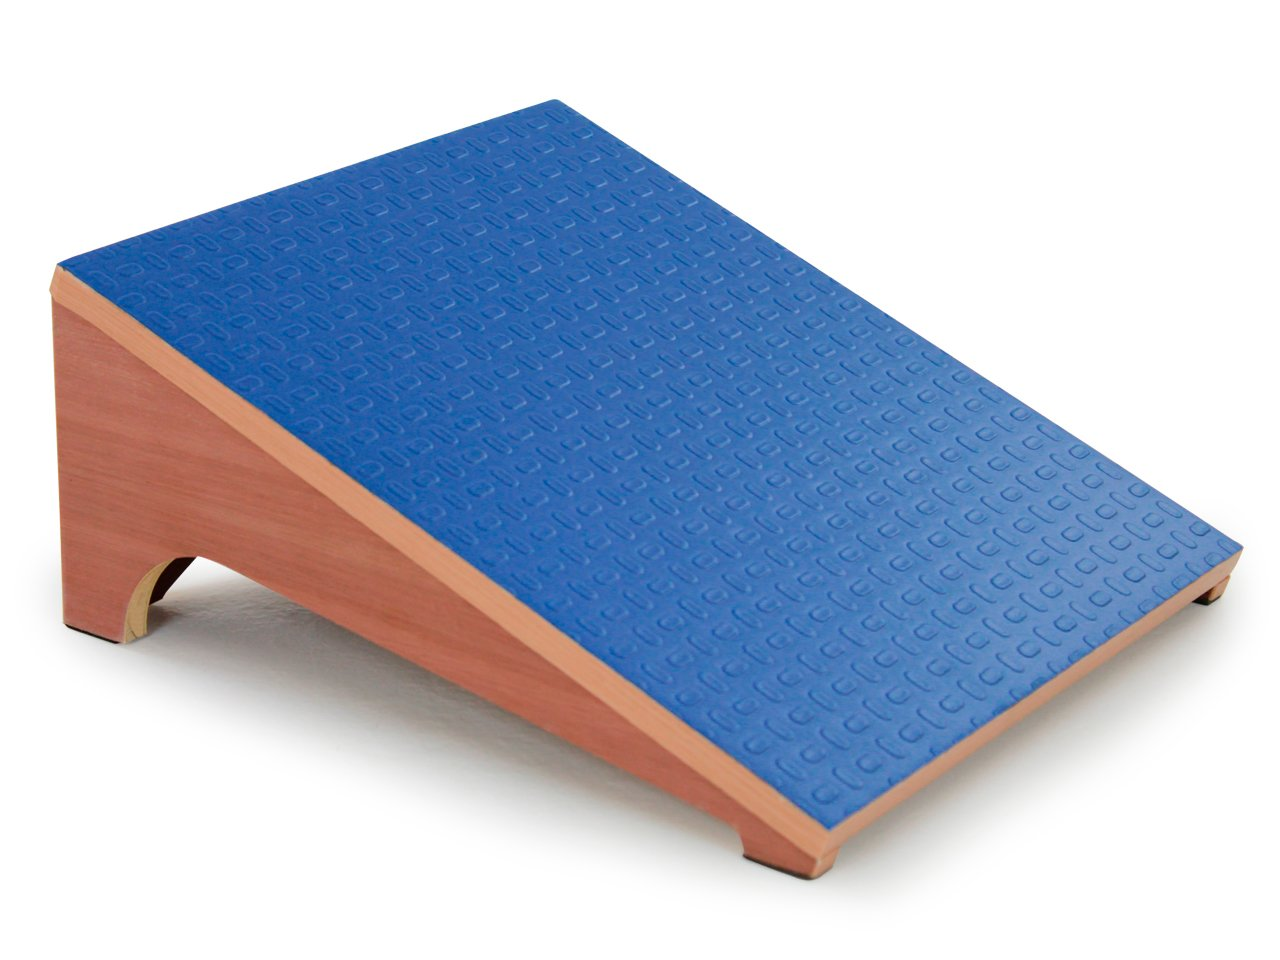 3B Scientific Eucalyptus Wood Slant Board for Controlled Stretching, 15'' Length x 14'' Width x 6-1/2'' Height